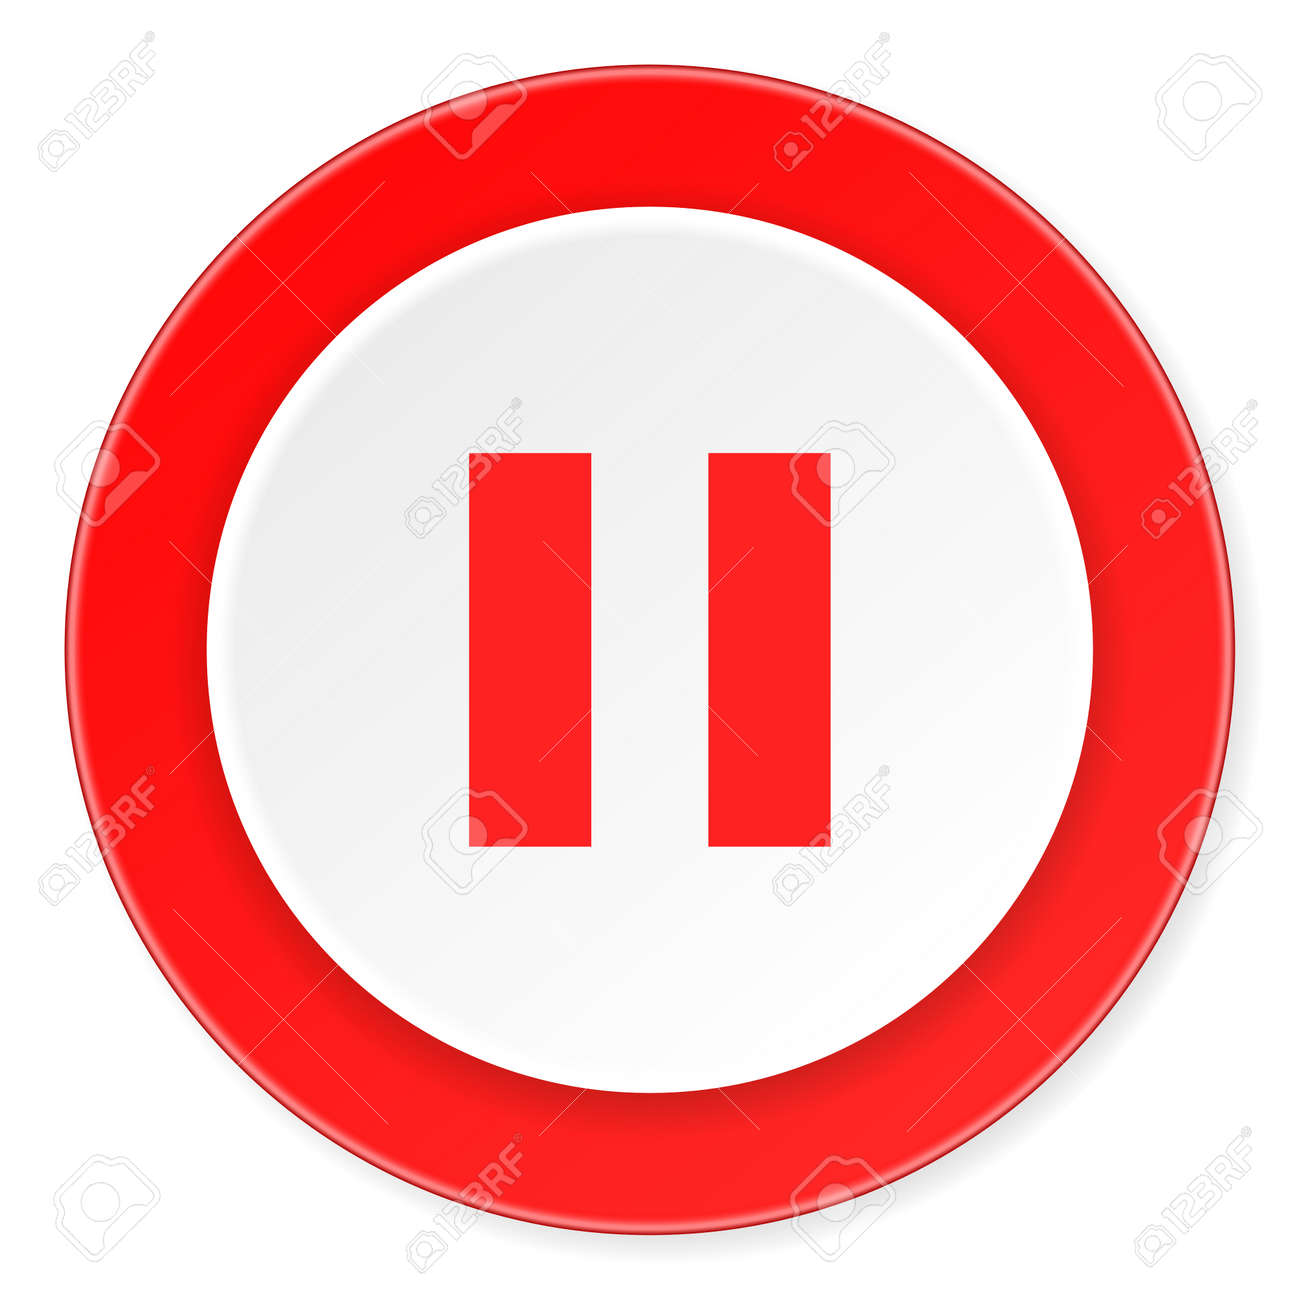 pause red circle 3d modern design flat icon on white background